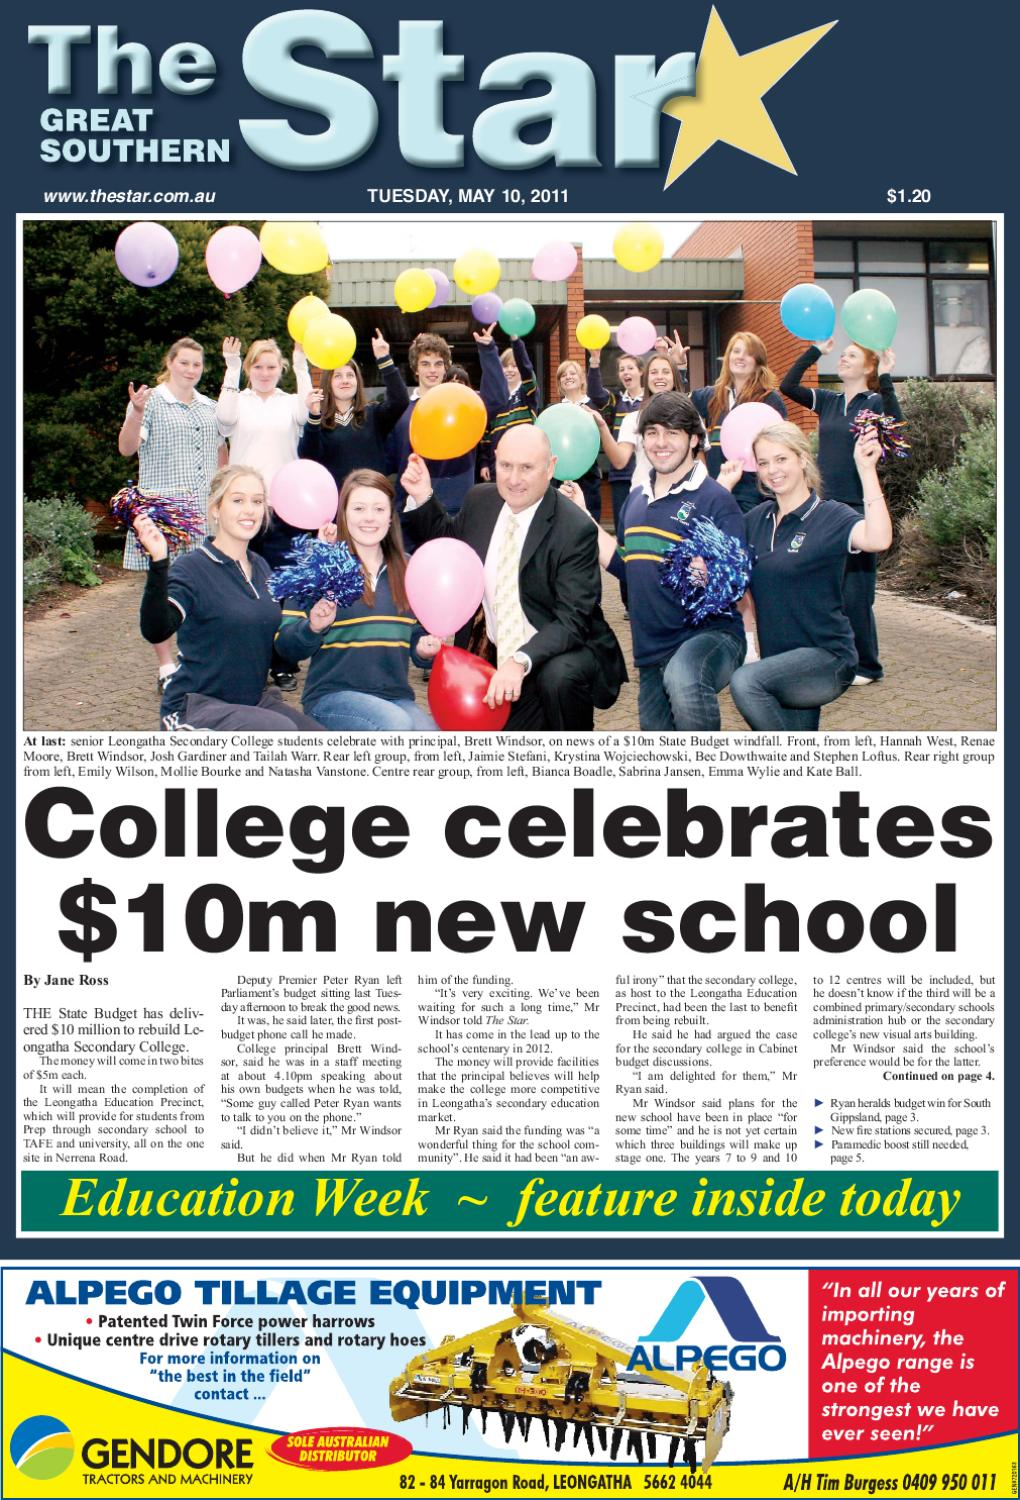 The Great Southern Star May 10 2011 By The Great Southern Star Issuu